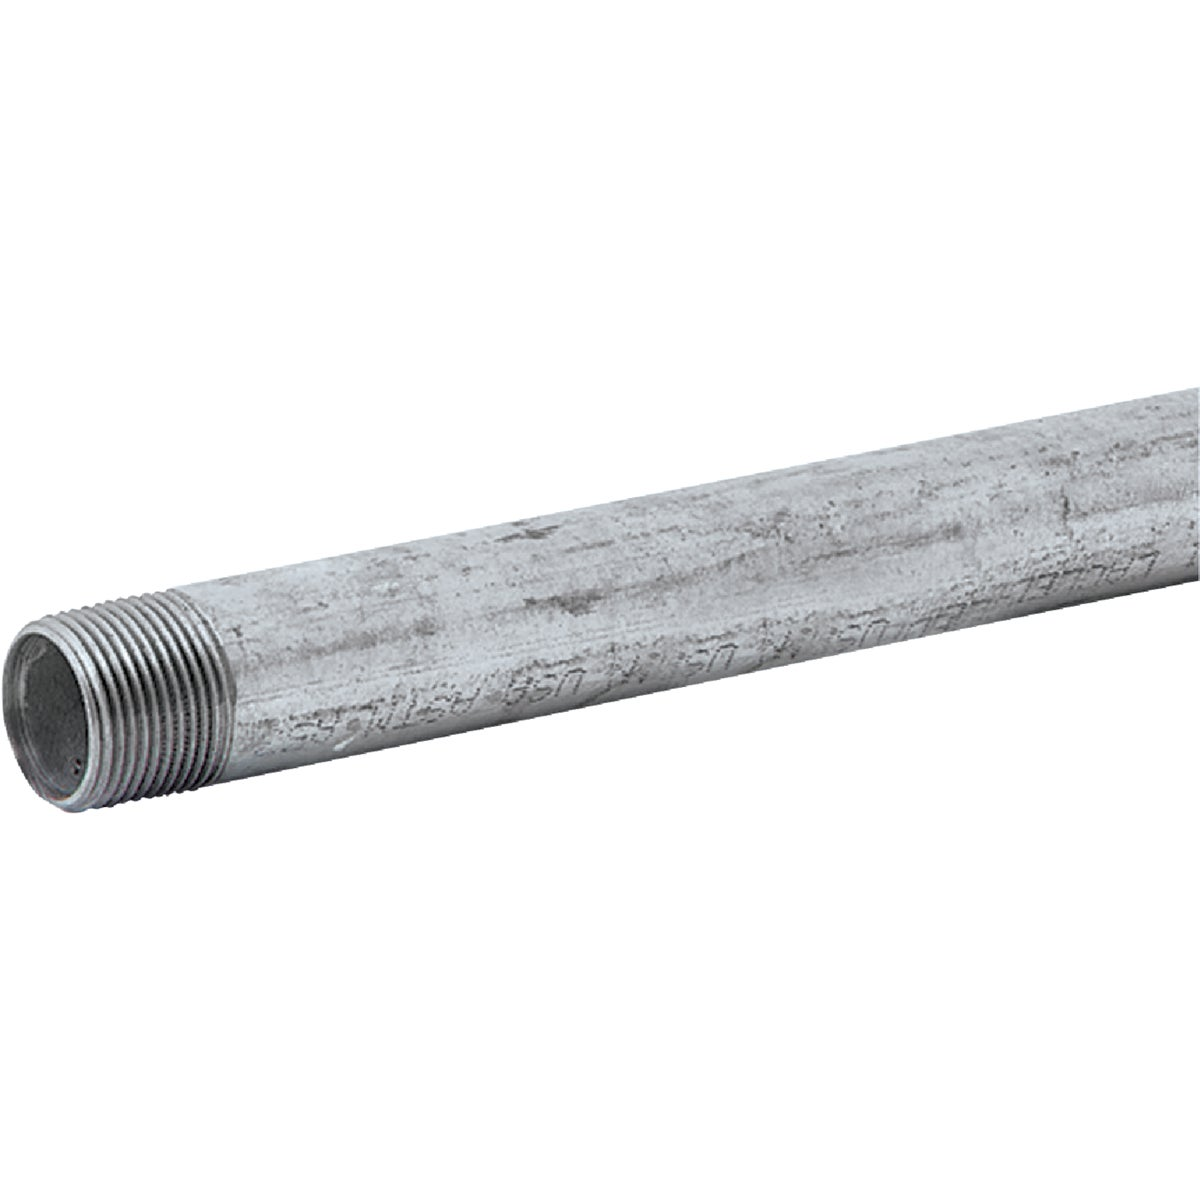 "1""X10' GALV PIPE - 10624 by Southland Pipe"